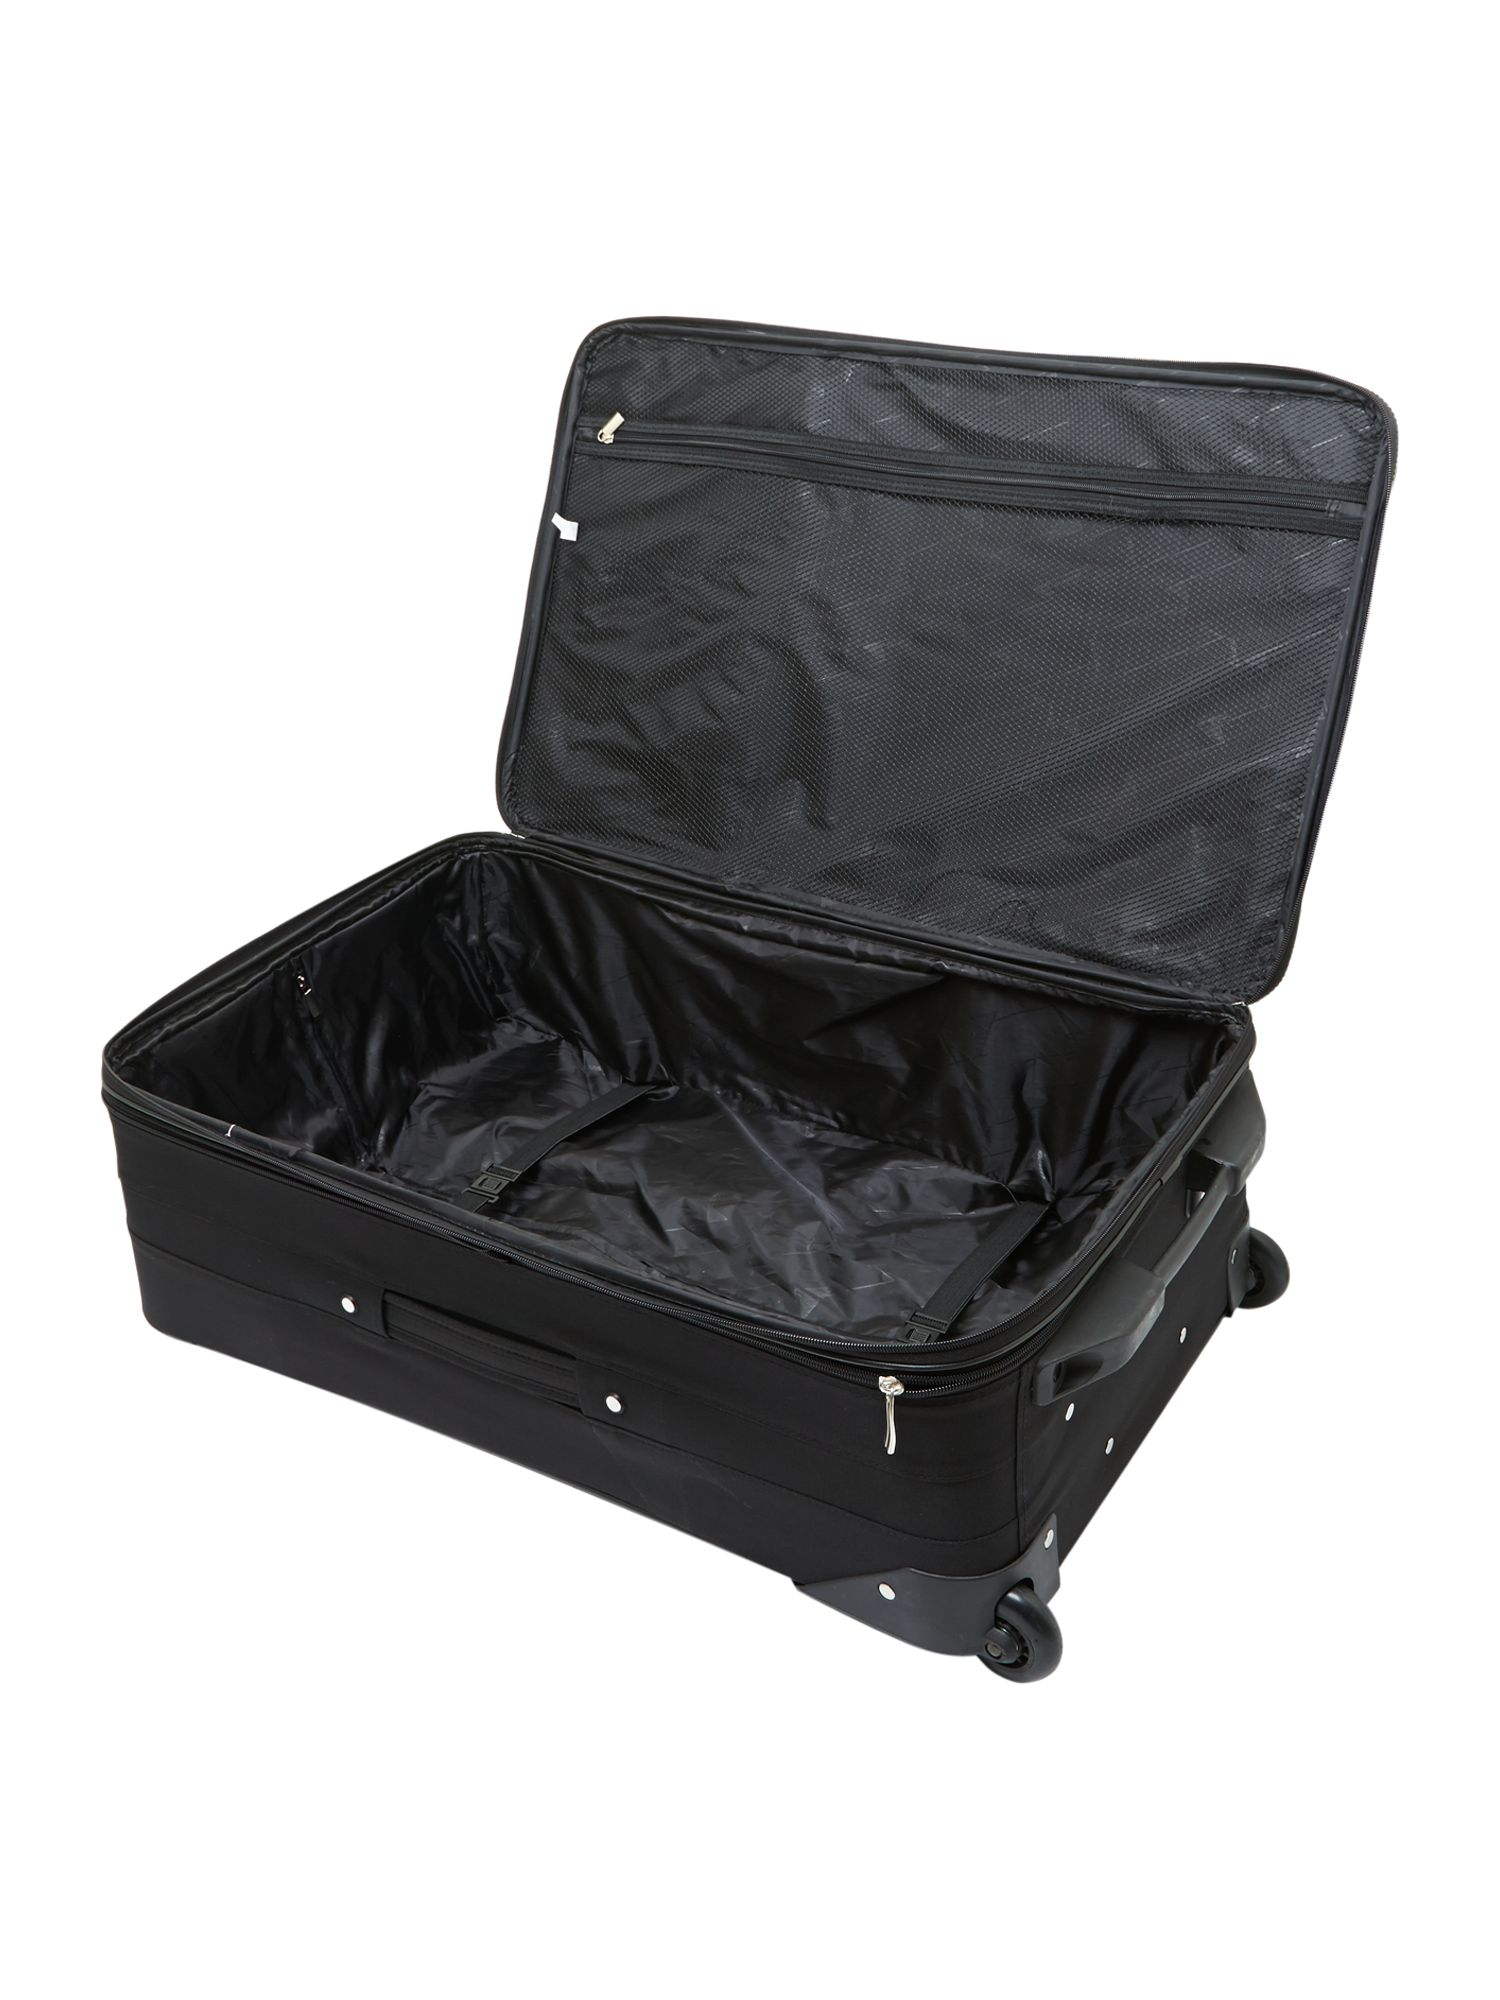 Phoenix large trolley suitcase 70cm